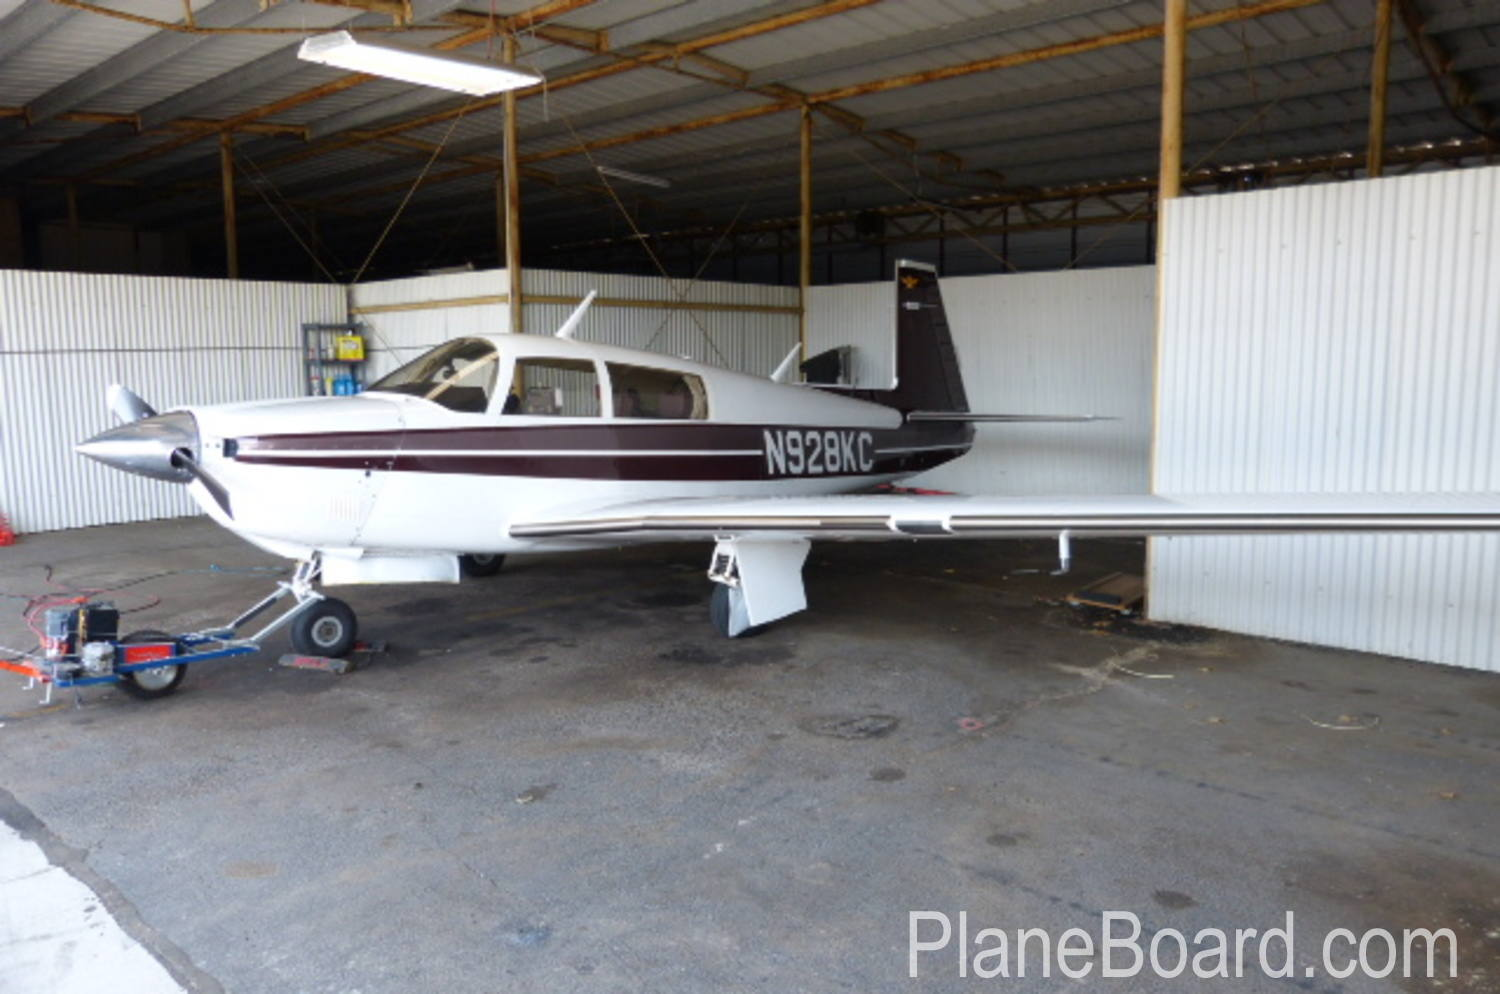 1988 Mooney M20J 201 primary